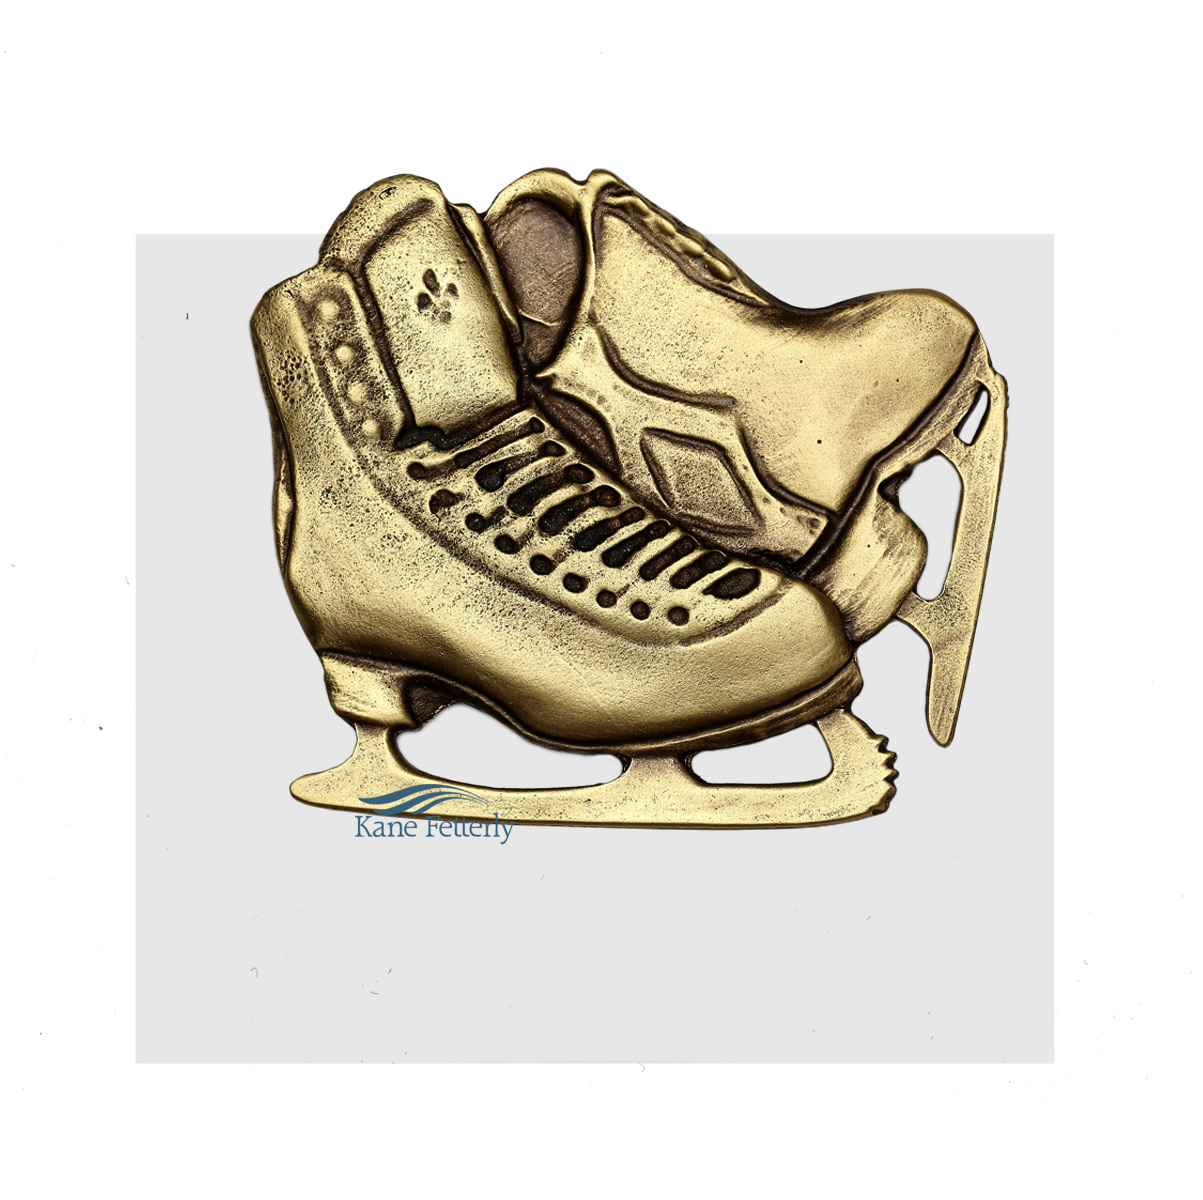 A0356 Skates ornament for urn